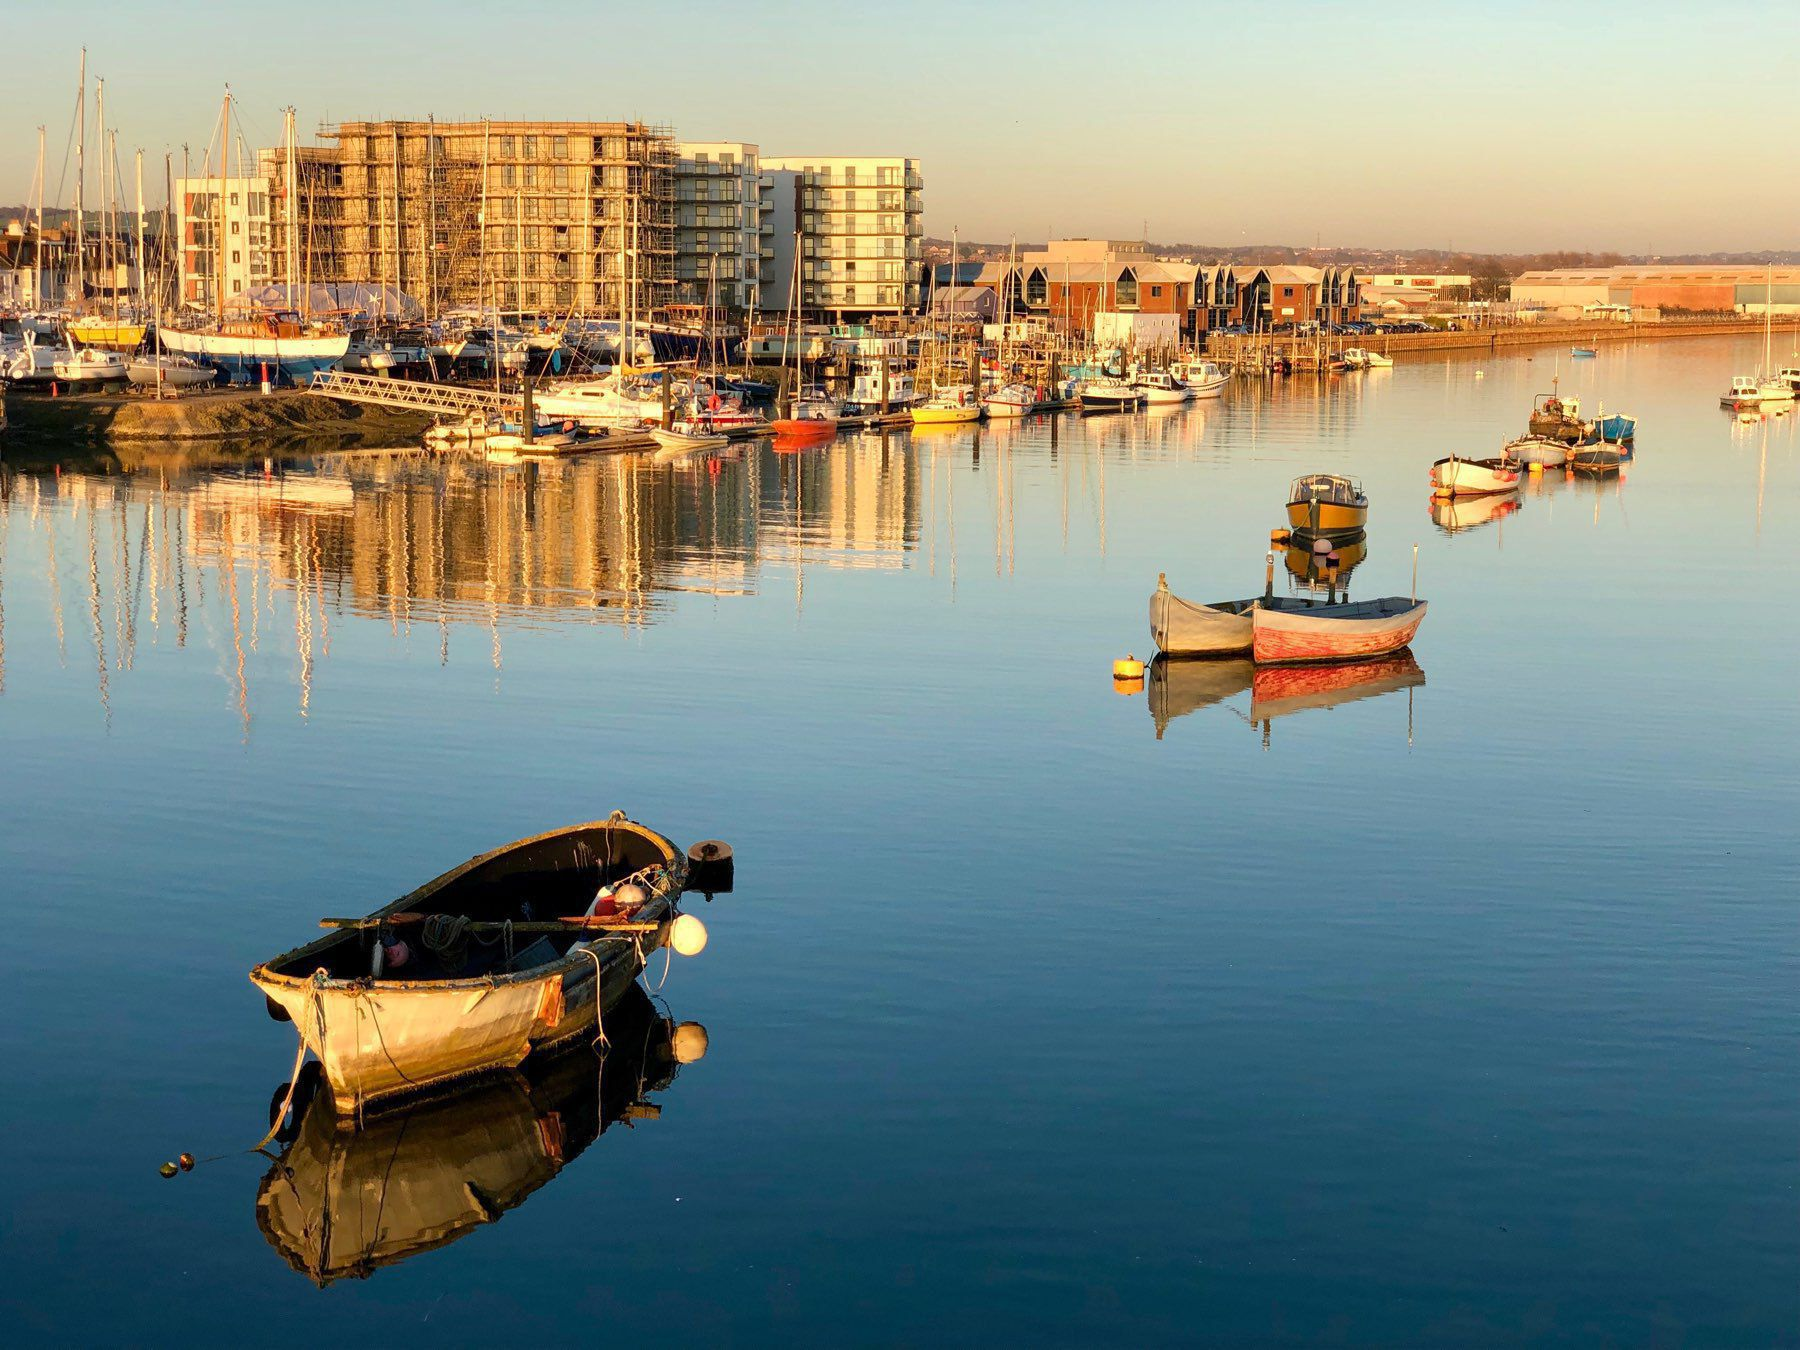 Evening light on boats in the river Adur